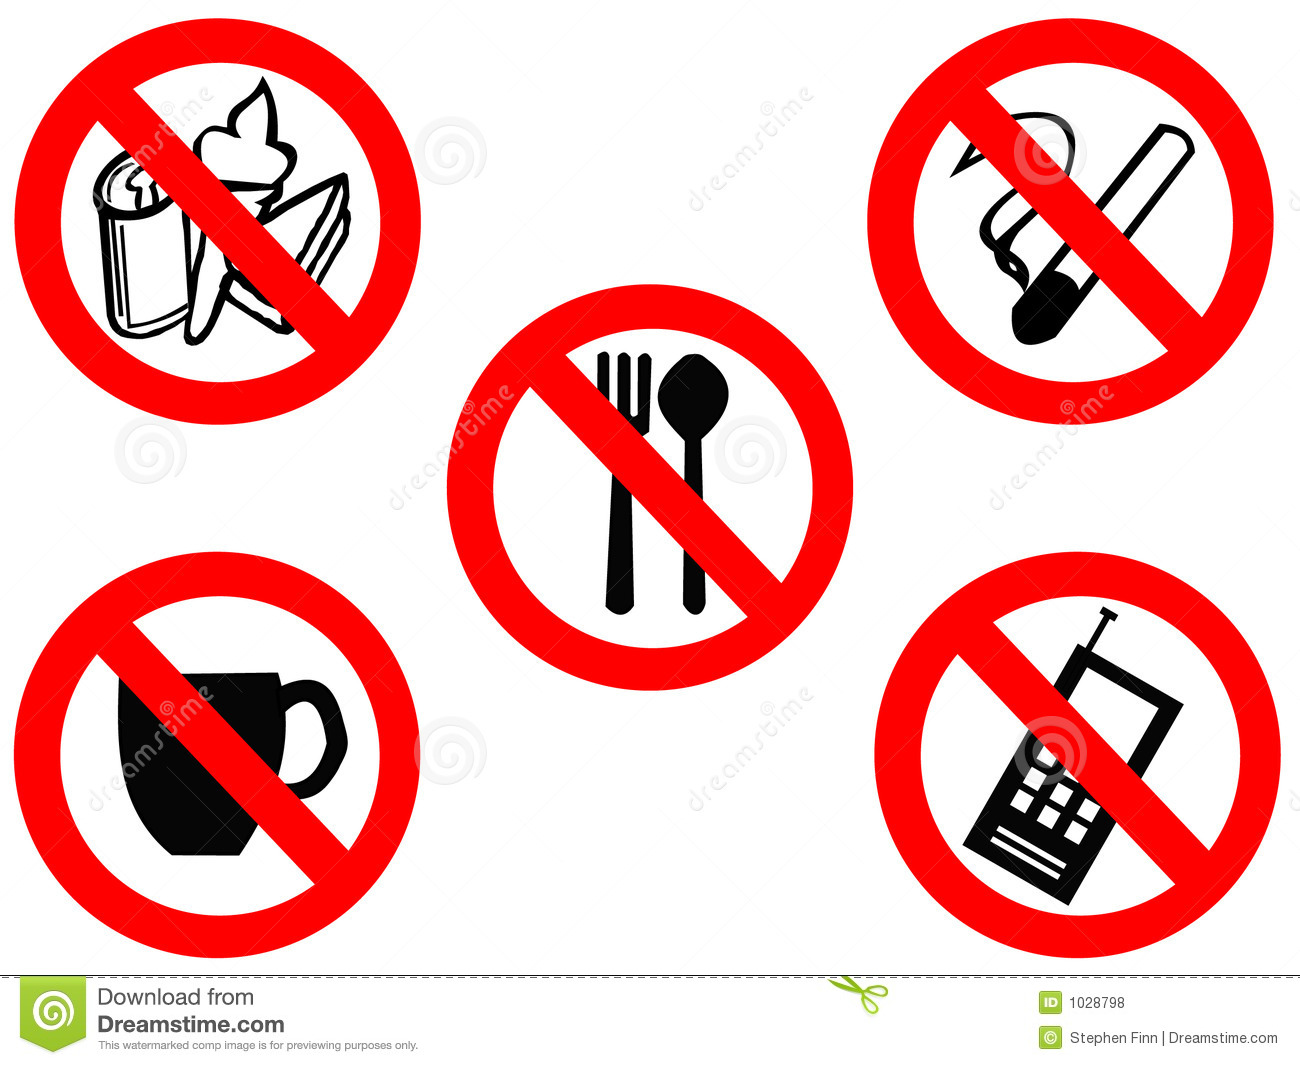 Eating Smoking Prohibited Signs Royalty Free Stock Photos